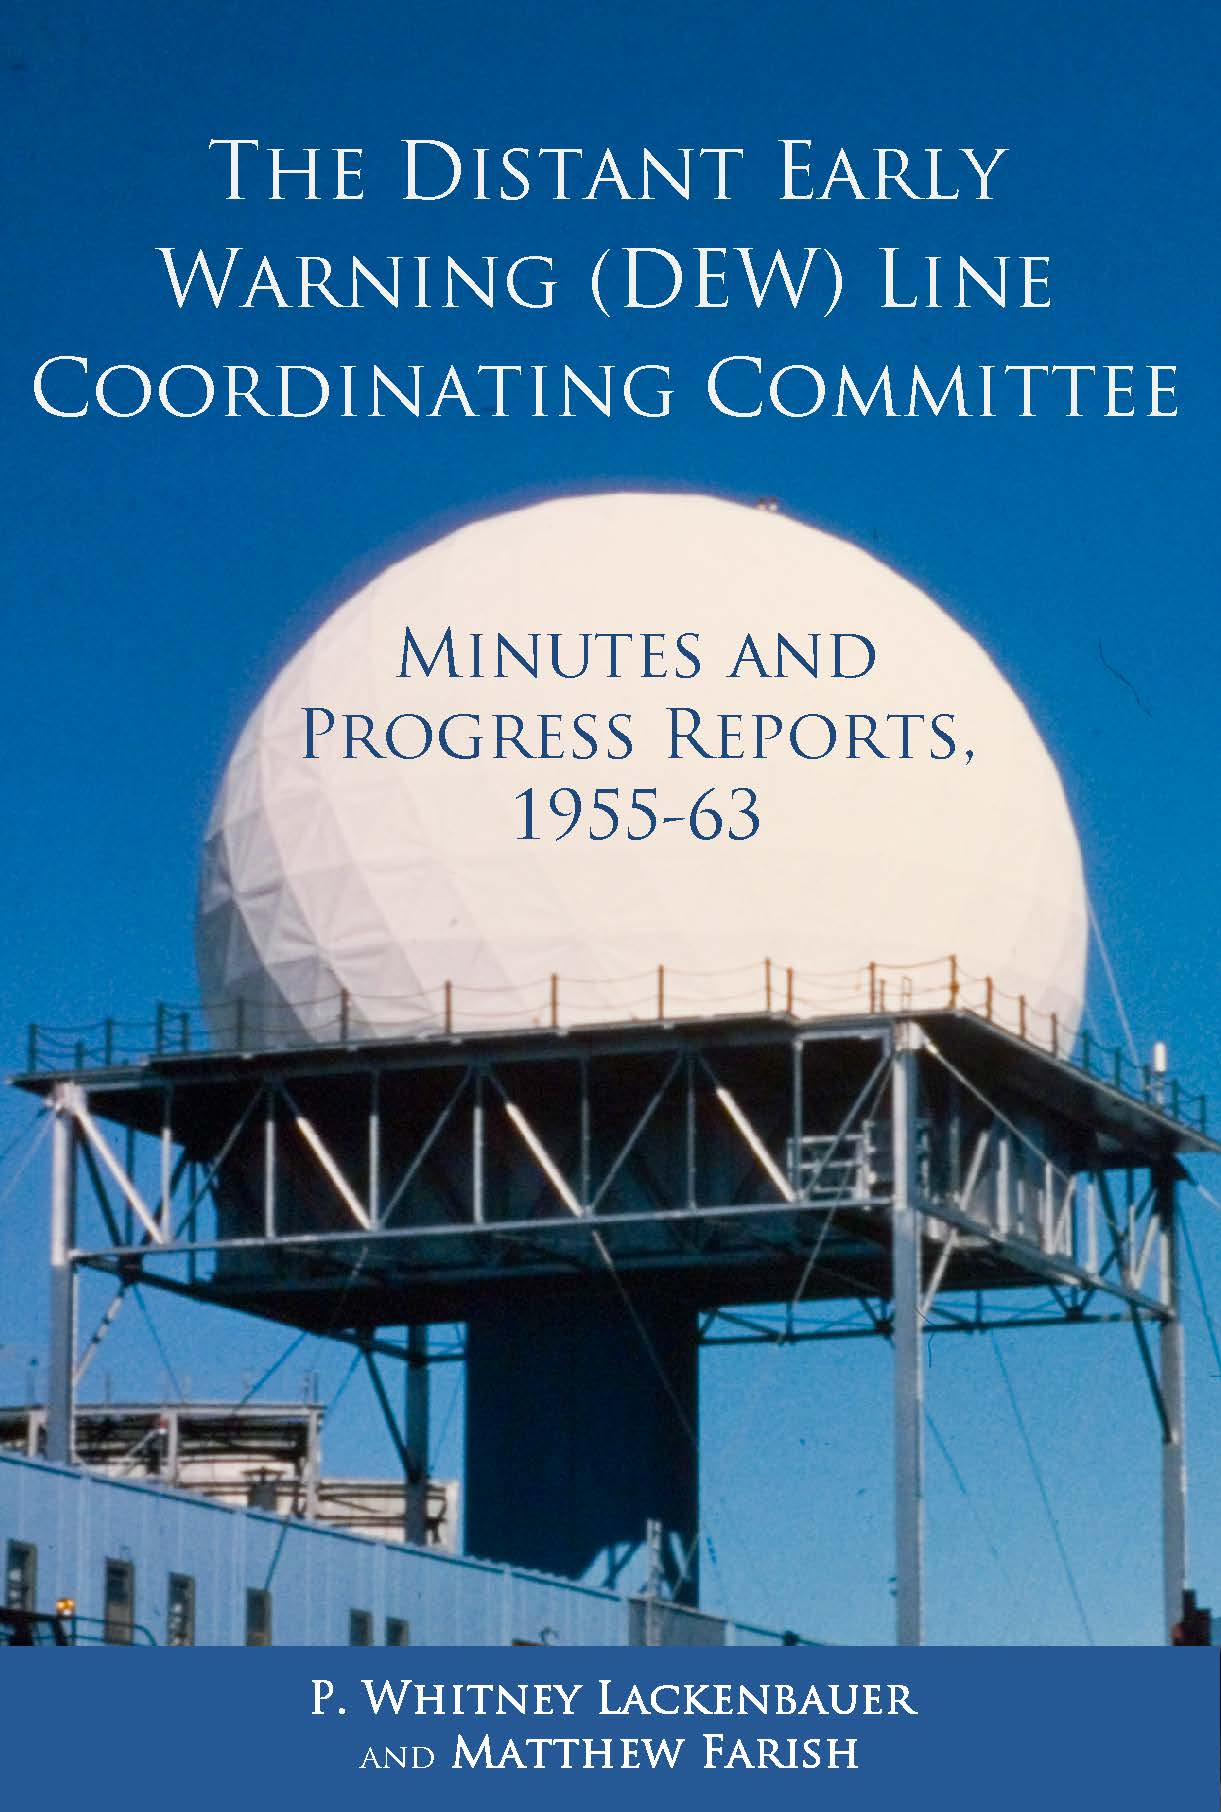 The Distant Early Warning (DEW) Line Coordinating Committee: Minutes and Progress Reports, 1955-63